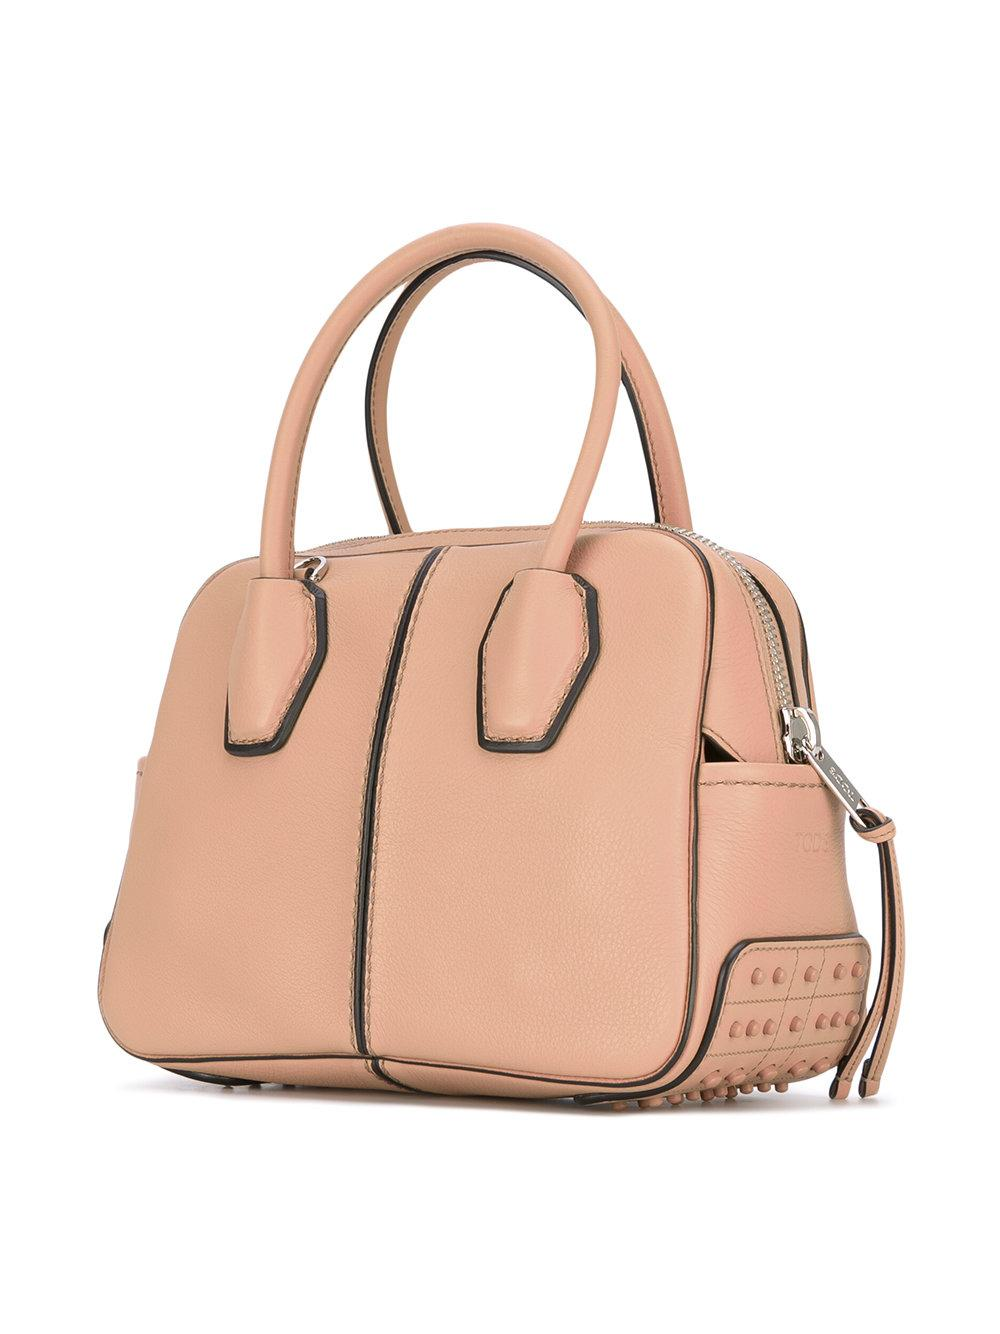 Tod's Miky Bowler Leather Tote Bag  in Pink/Purple (Pink)